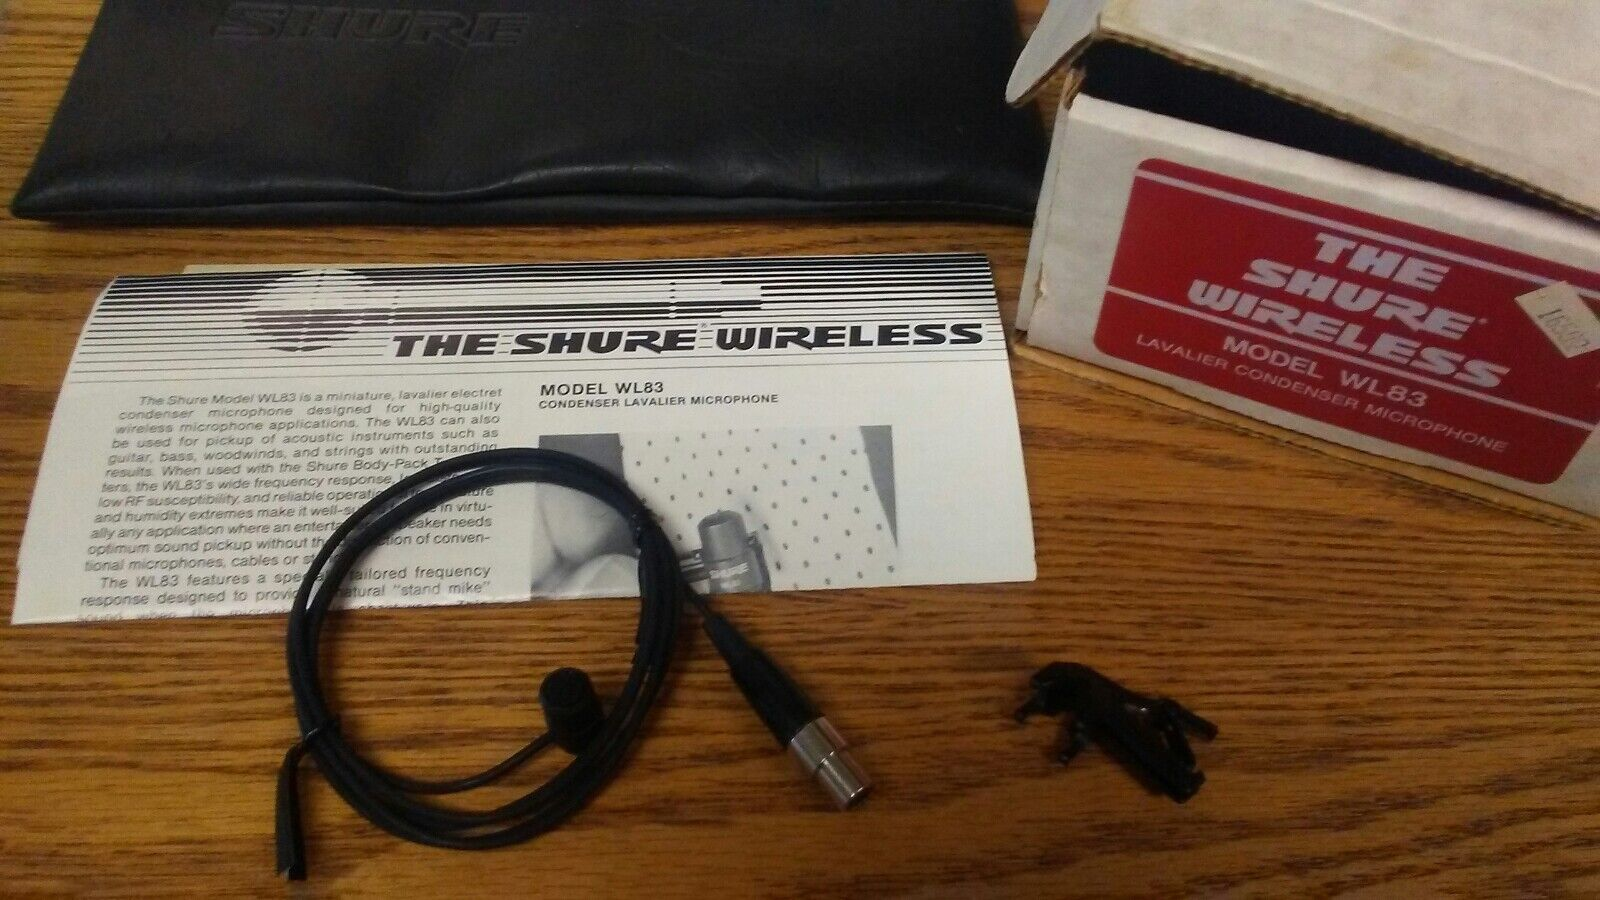 The shure WL83 Lavalier Microphone opened box